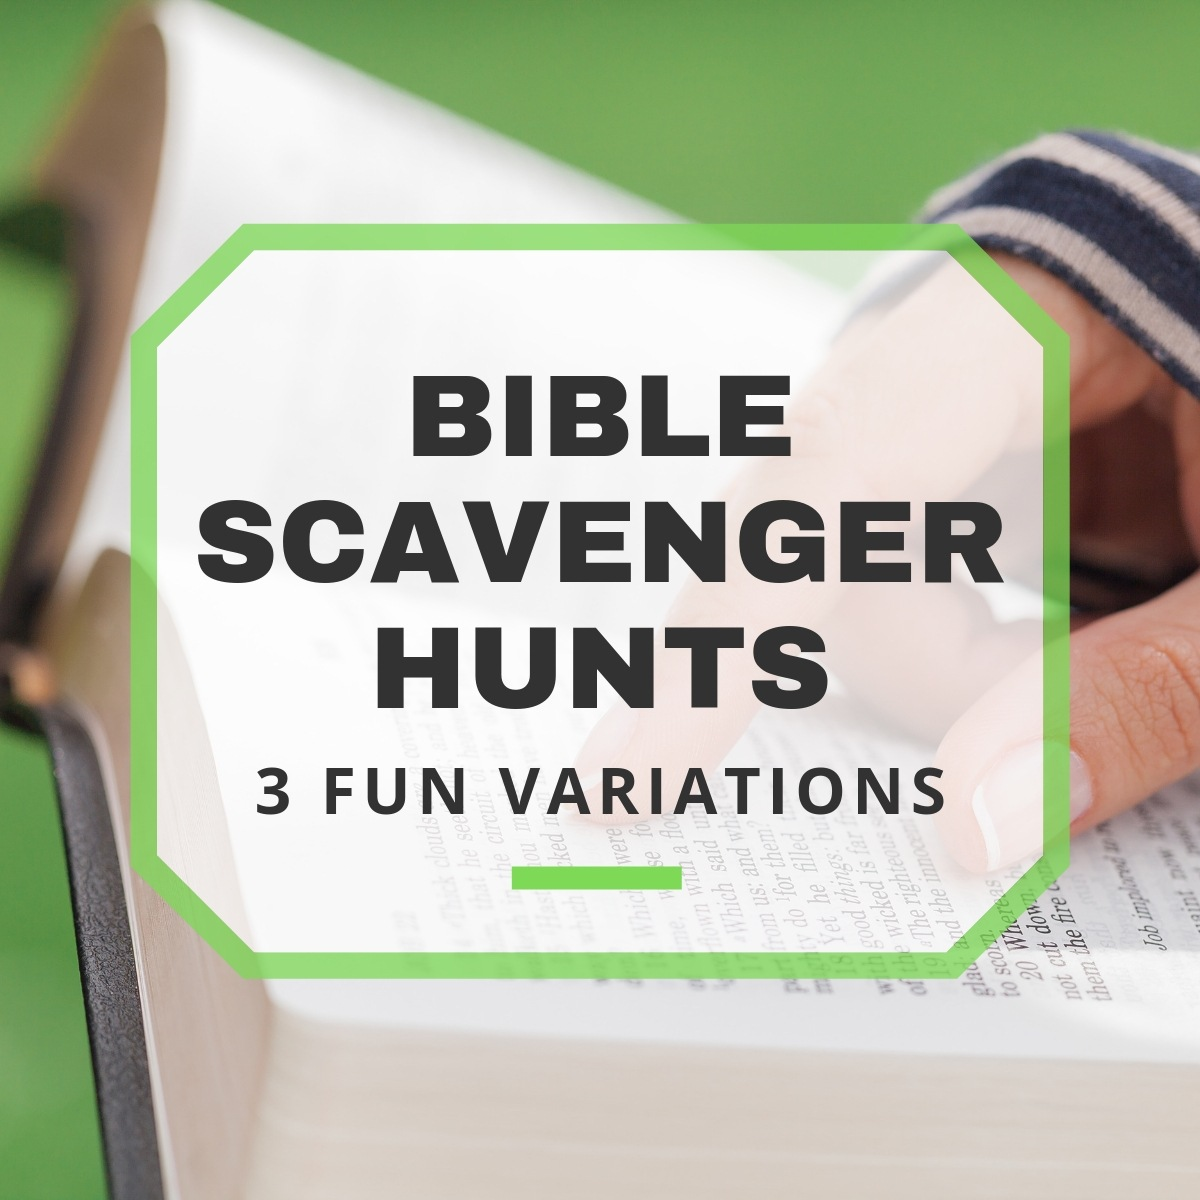 graphic regarding Family Reunion Scavenger Hunt Printable titled Bible Scavenger Hunts: 3 Enjoyable Dissimilarities in the direction of Engage in With Relatives